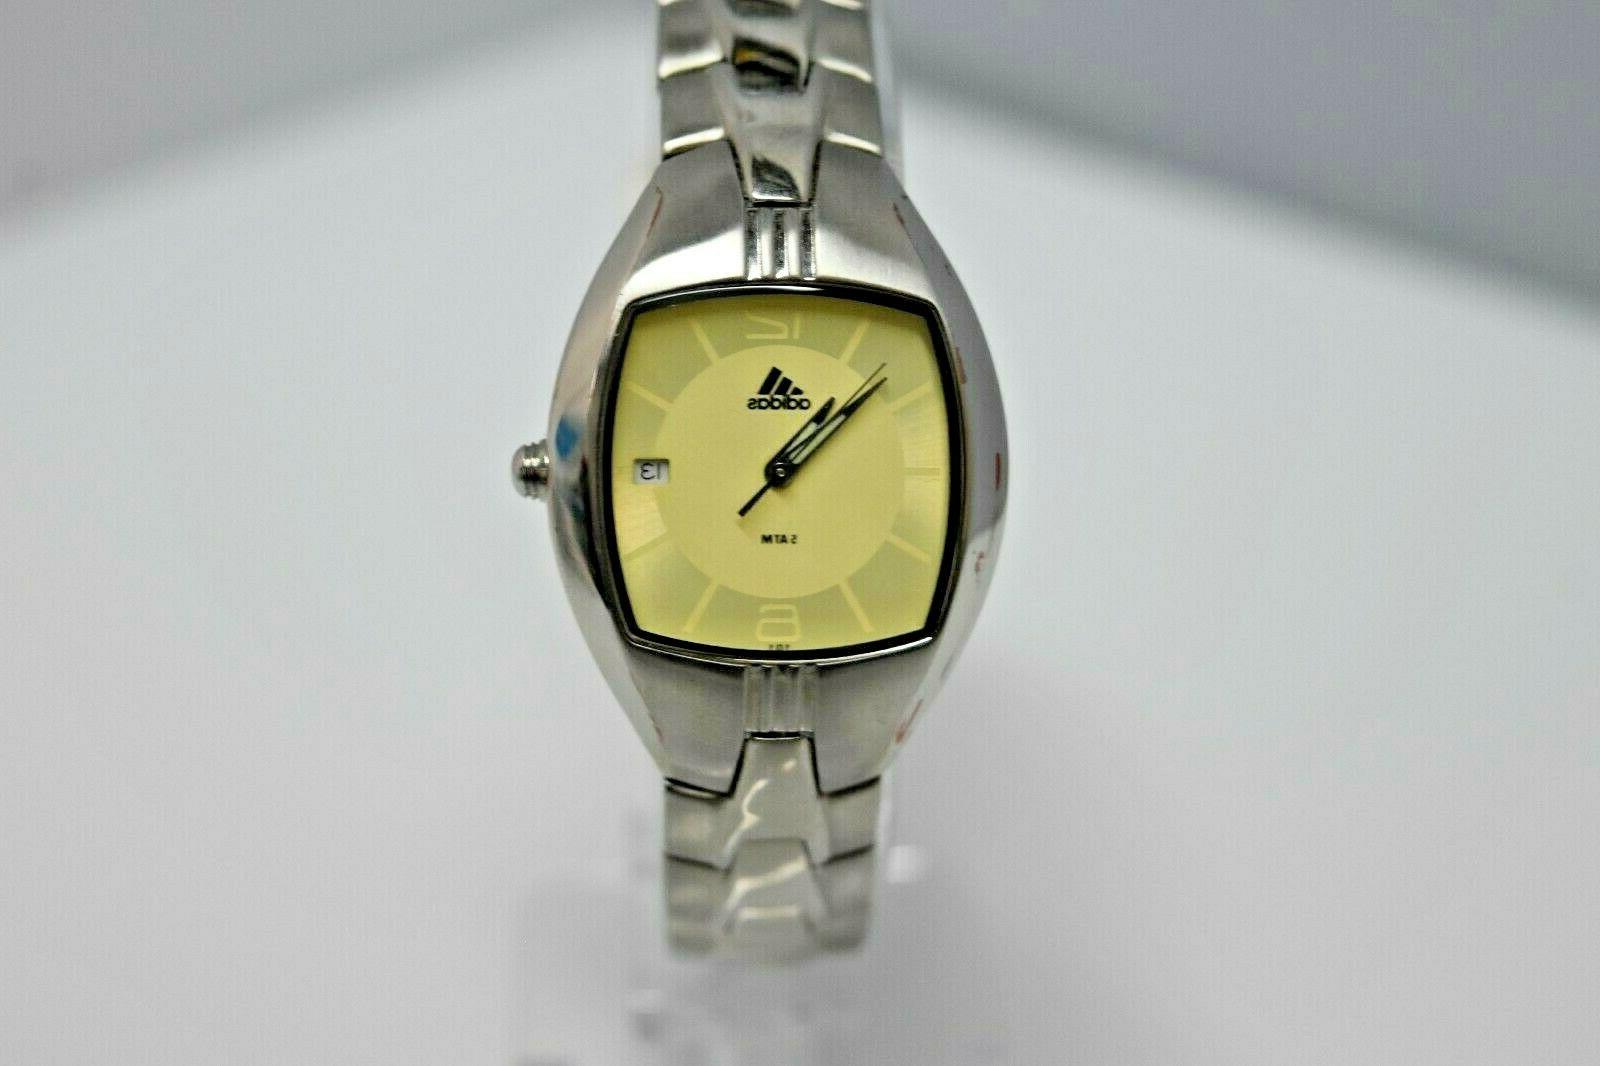 Adidas Steel $49 Watch